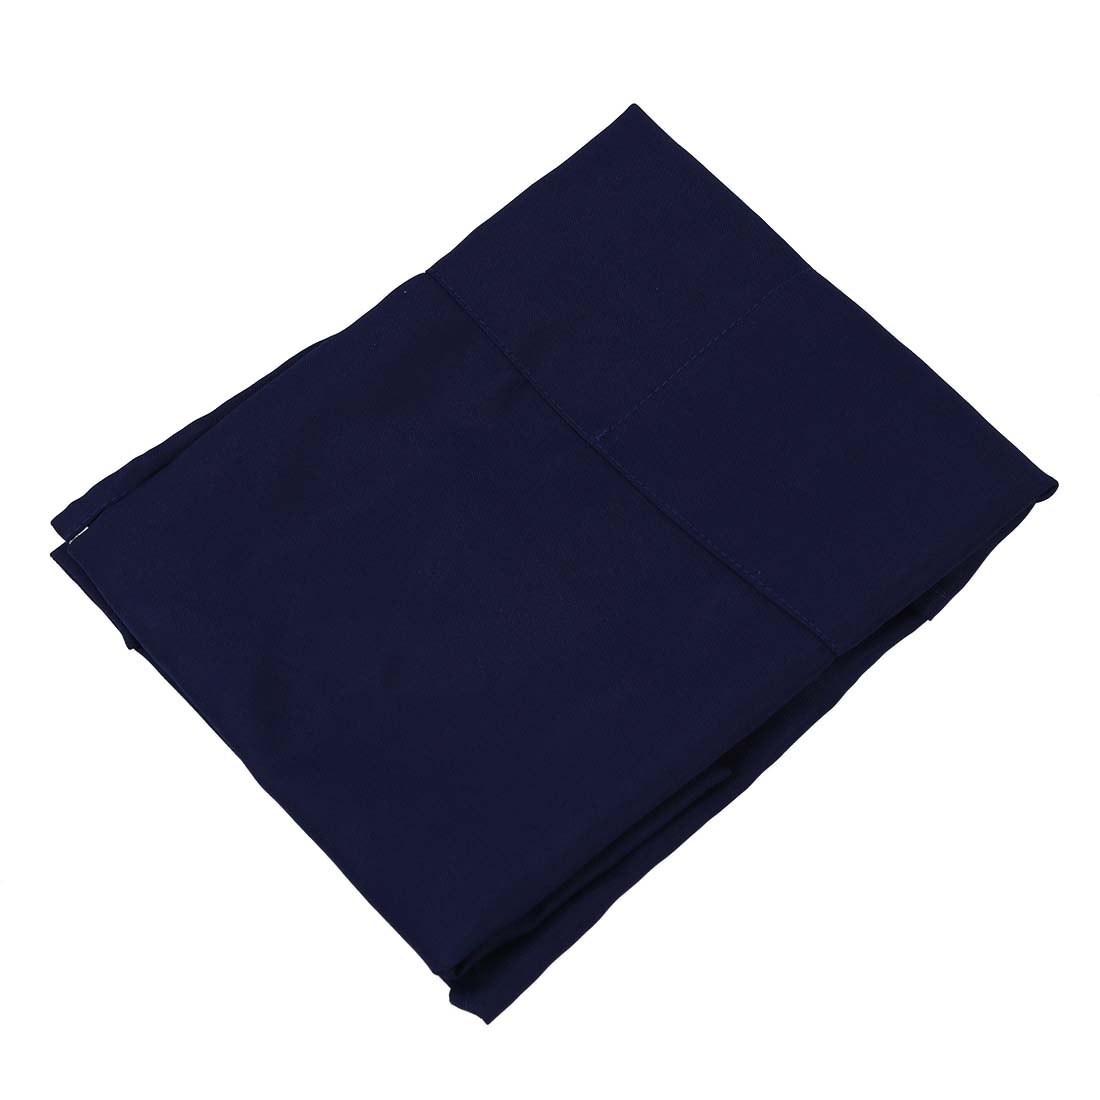 Plain-Apron-Front-Pocket-for-Butchers-Chefs-Kitchen-Cooking-Craft-Baking-Wa-S3W7